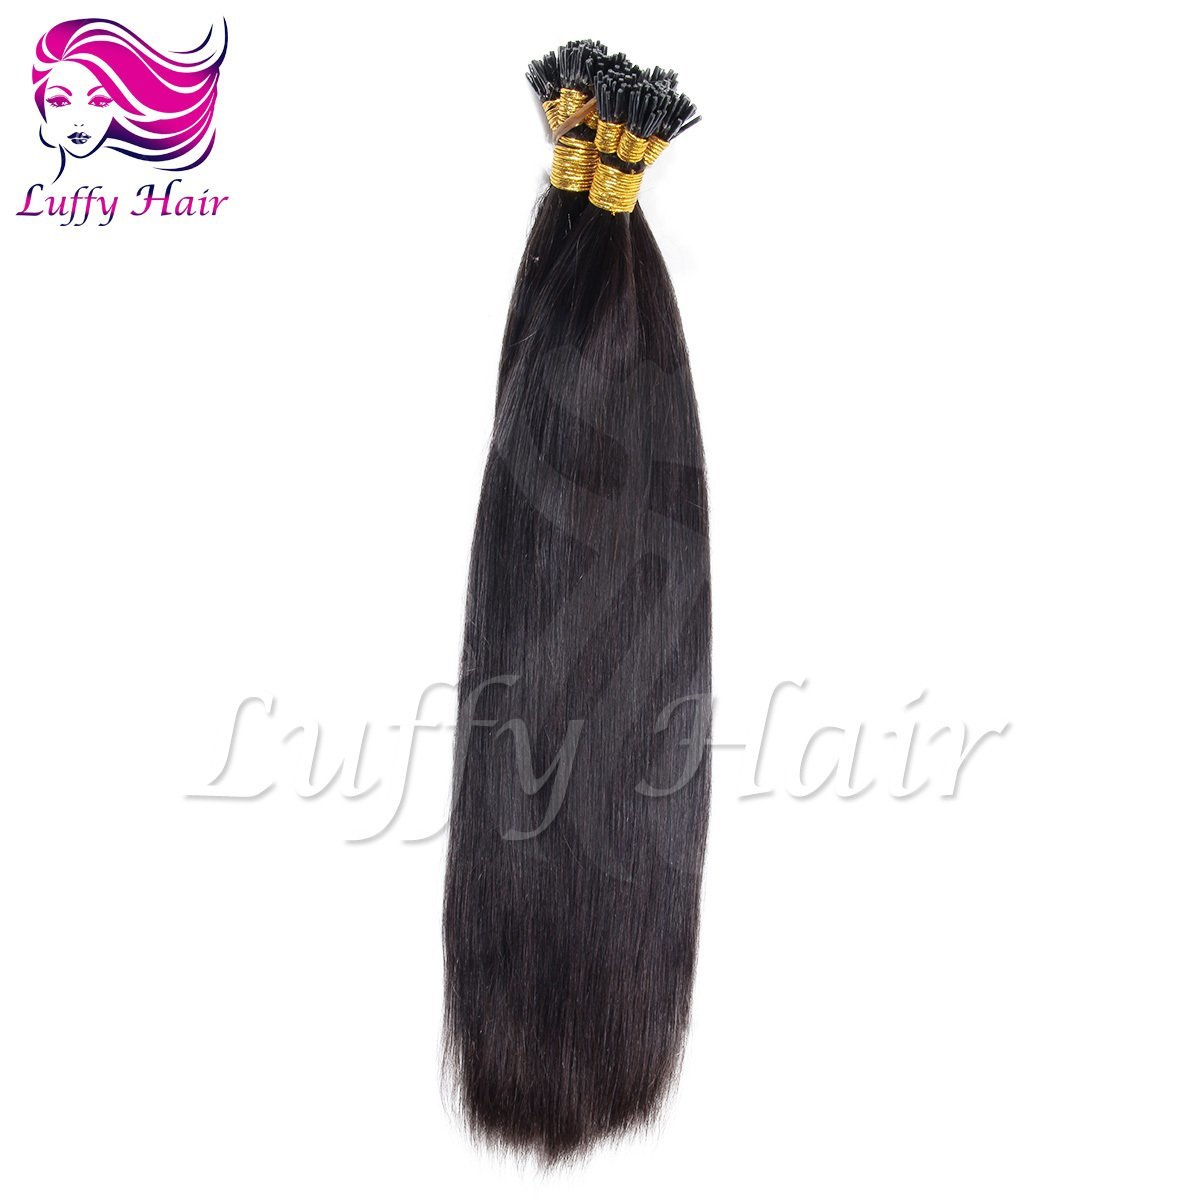 10A Virgin Human Hair Silky Straight Fusion Hair Extensions - KFL004